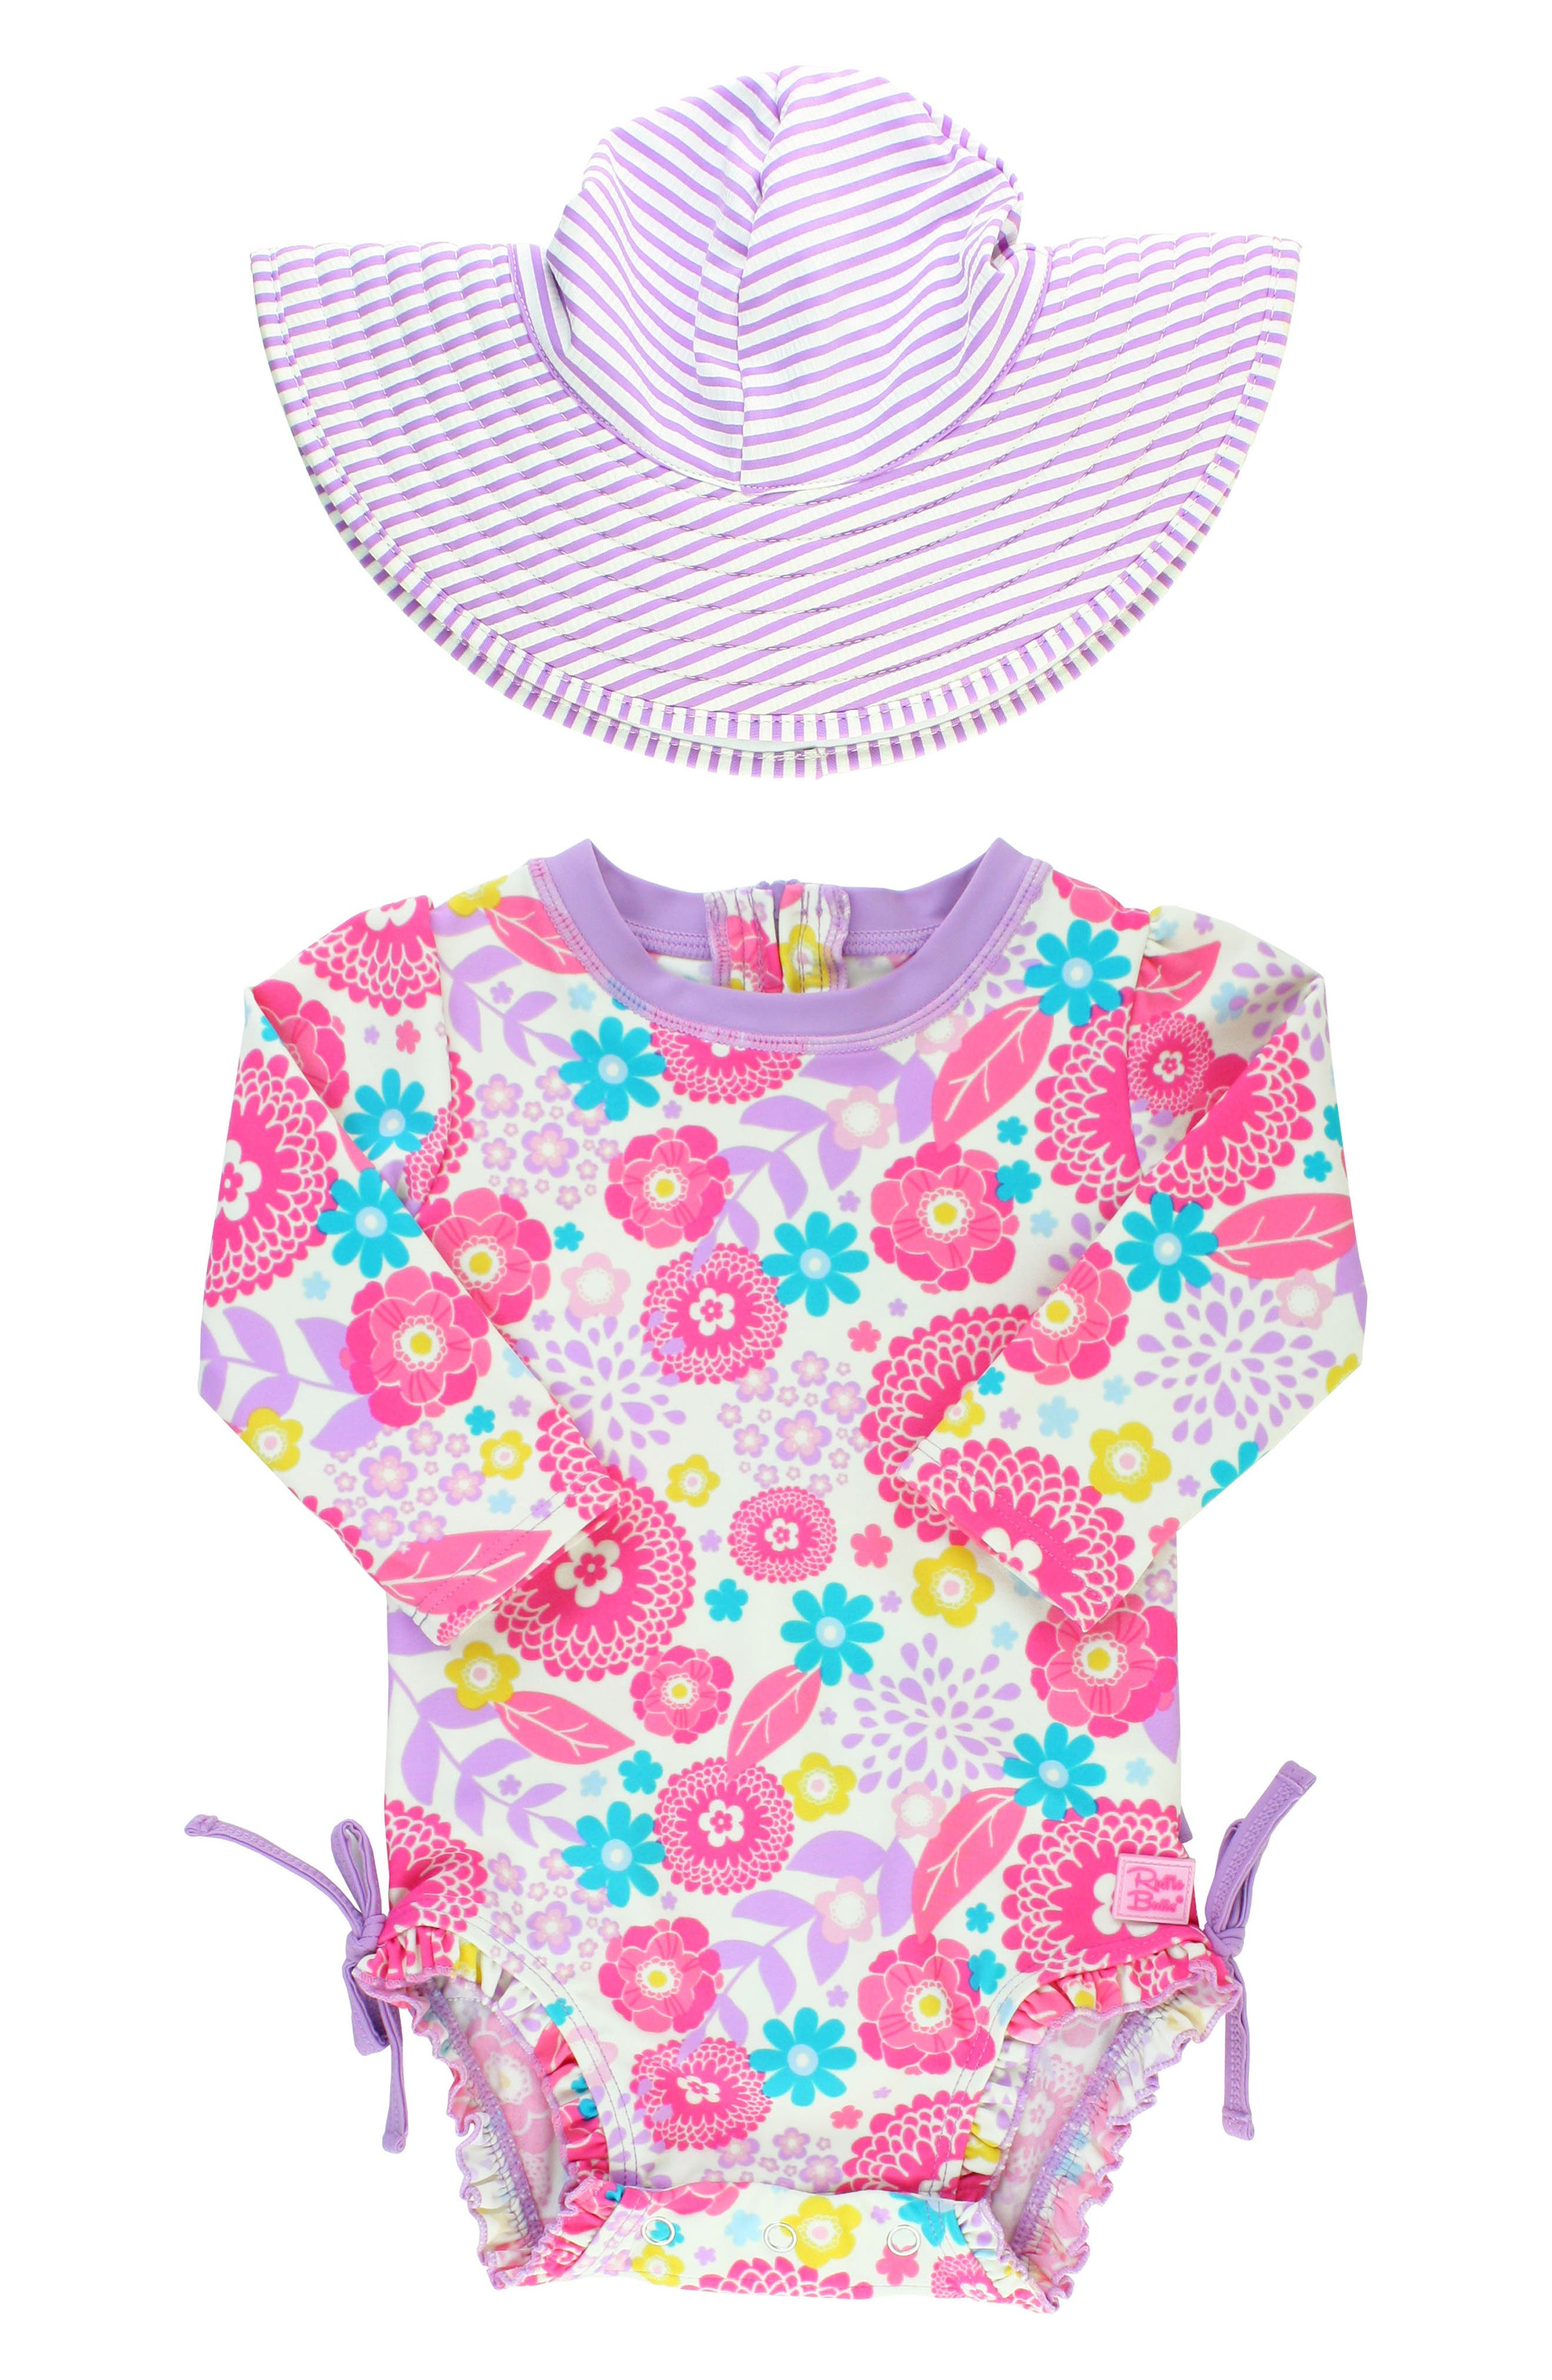 Blooming Buttercups One-Piece Rashguard Swimsuit & Hat Set,                         Main,                         color, 540